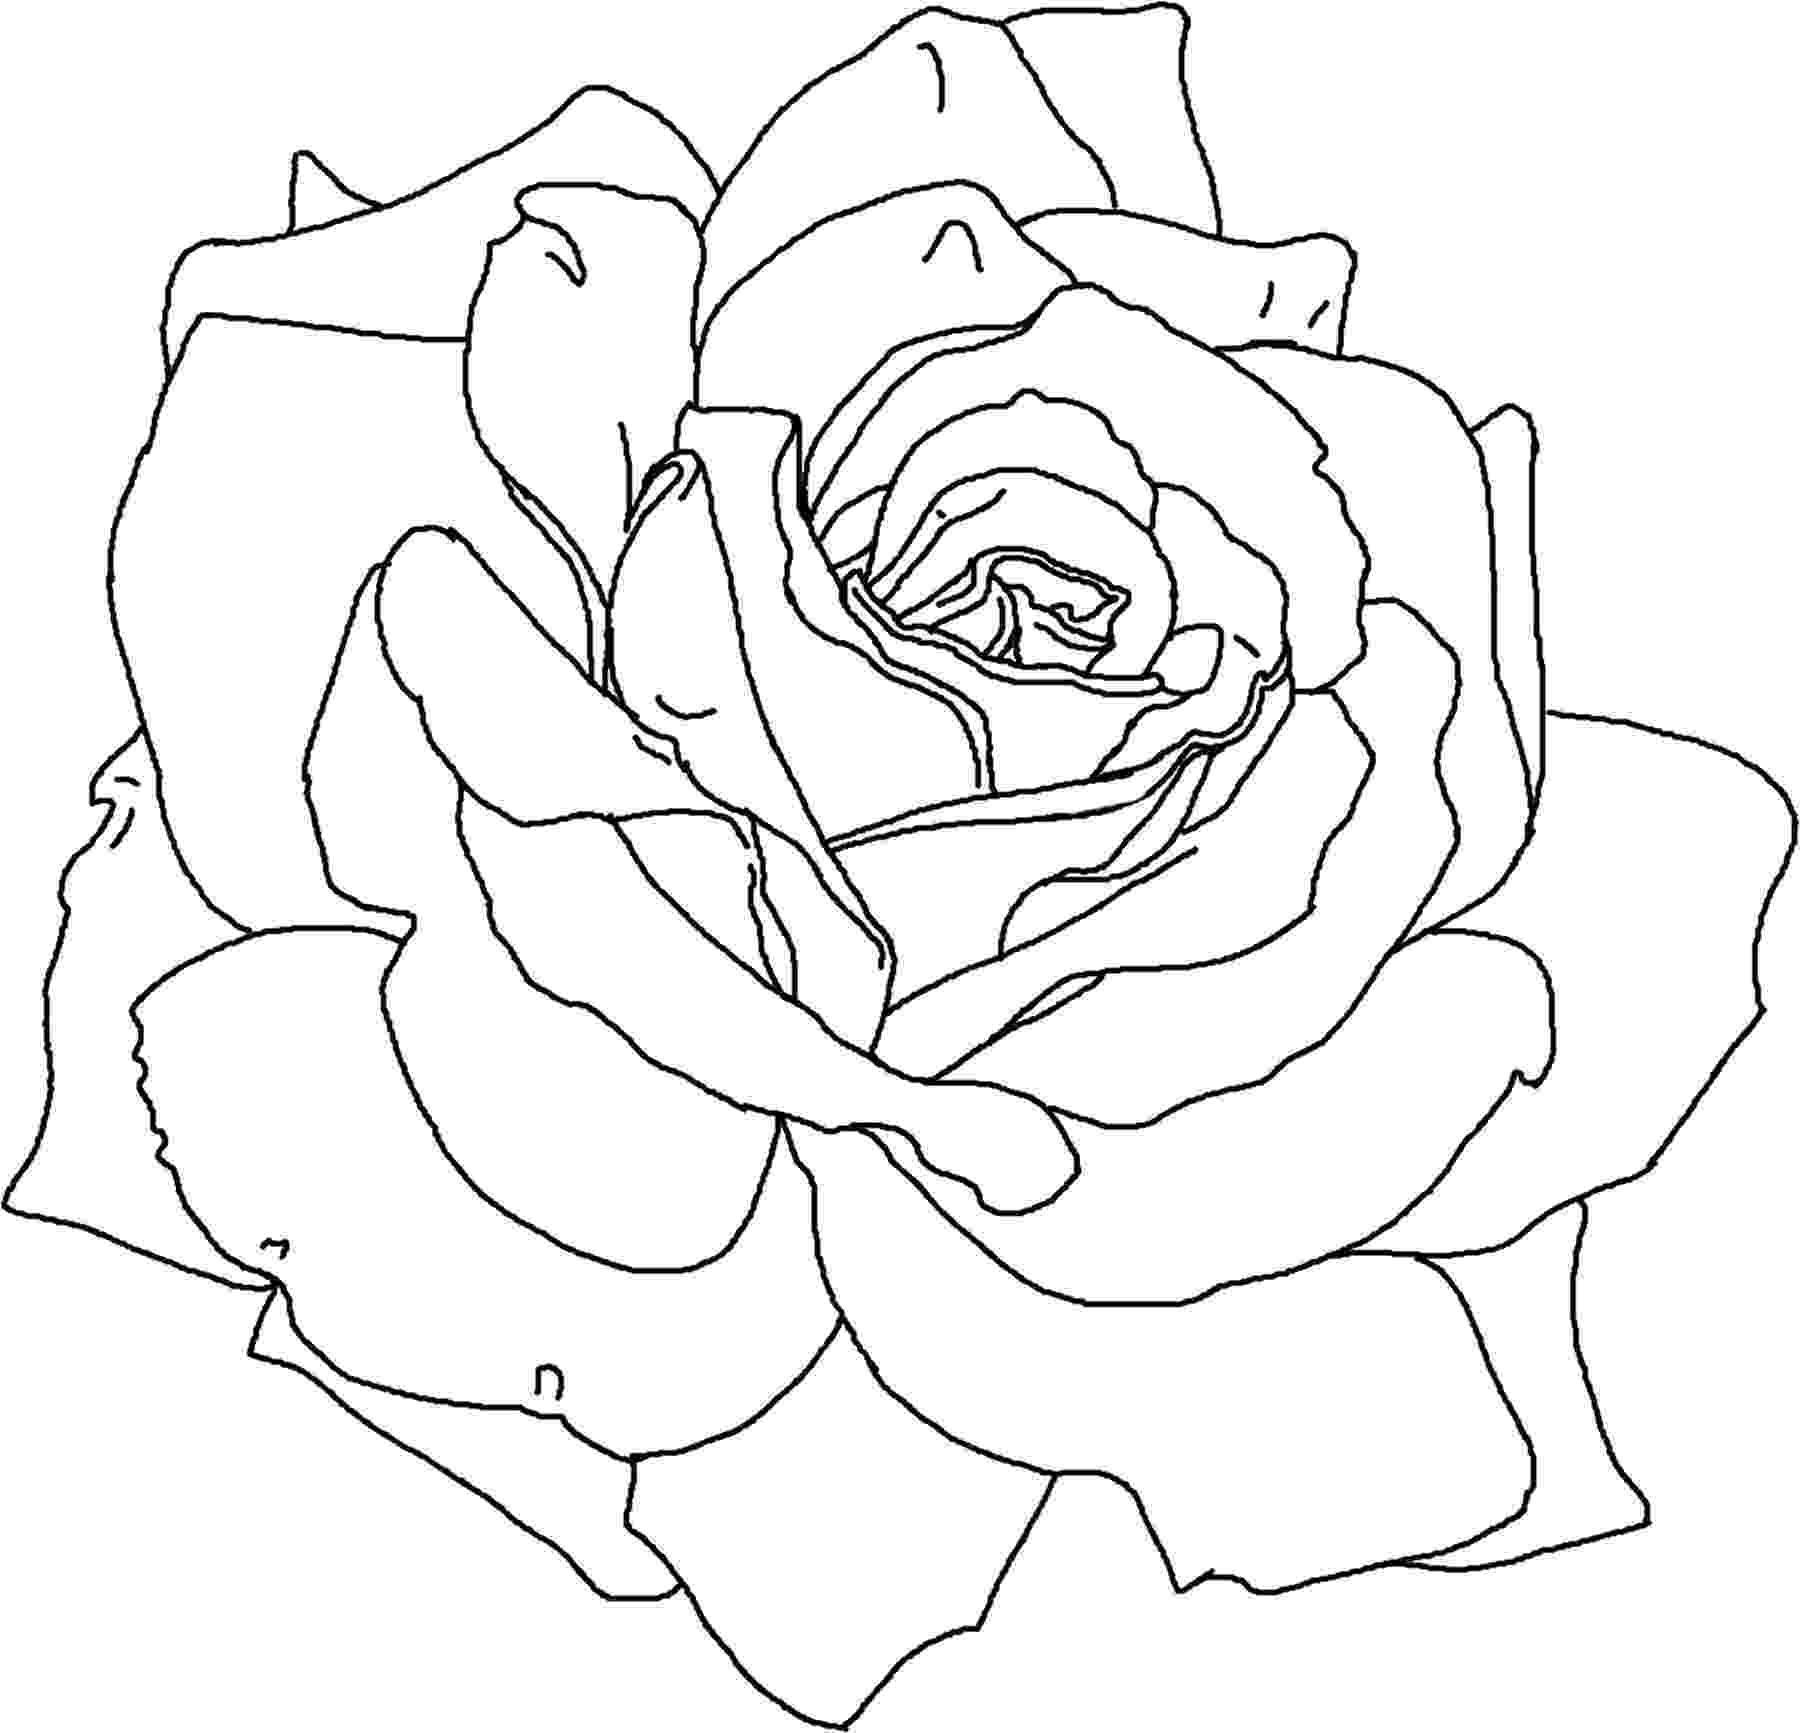 flower colouring pages to print flower coloring pages flower colouring to pages print